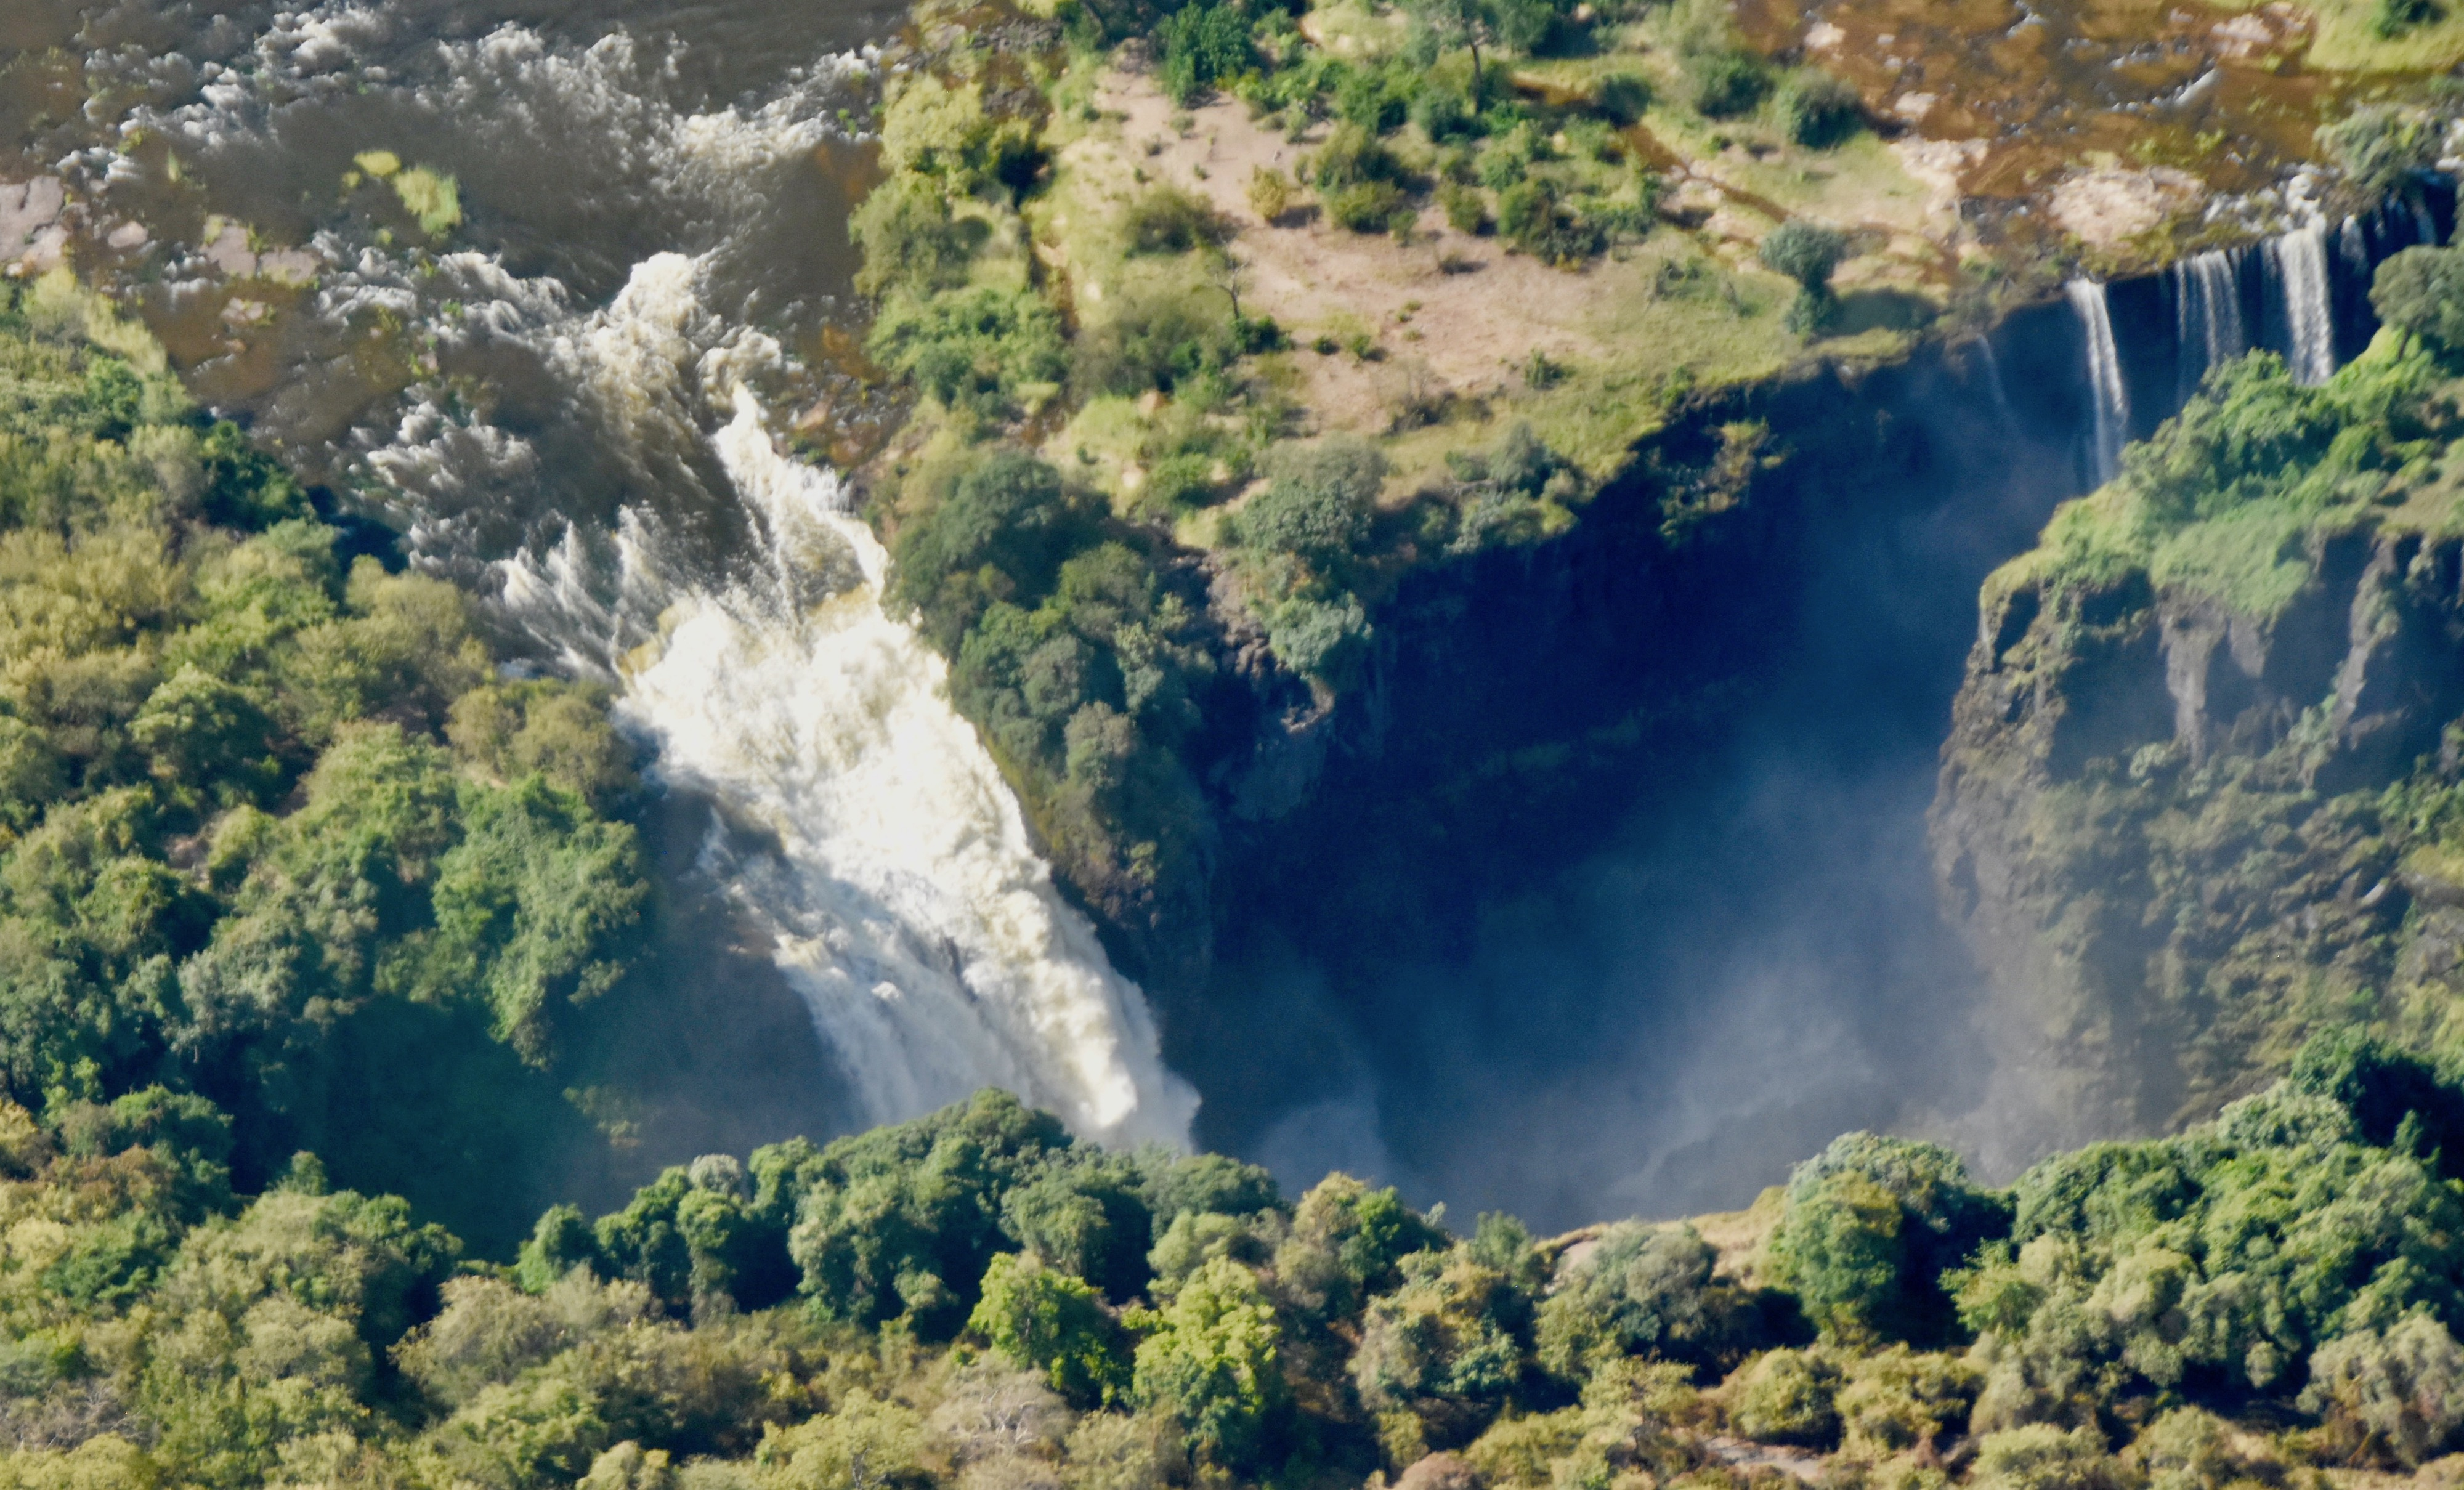 Aerial View of Devil's Cataract